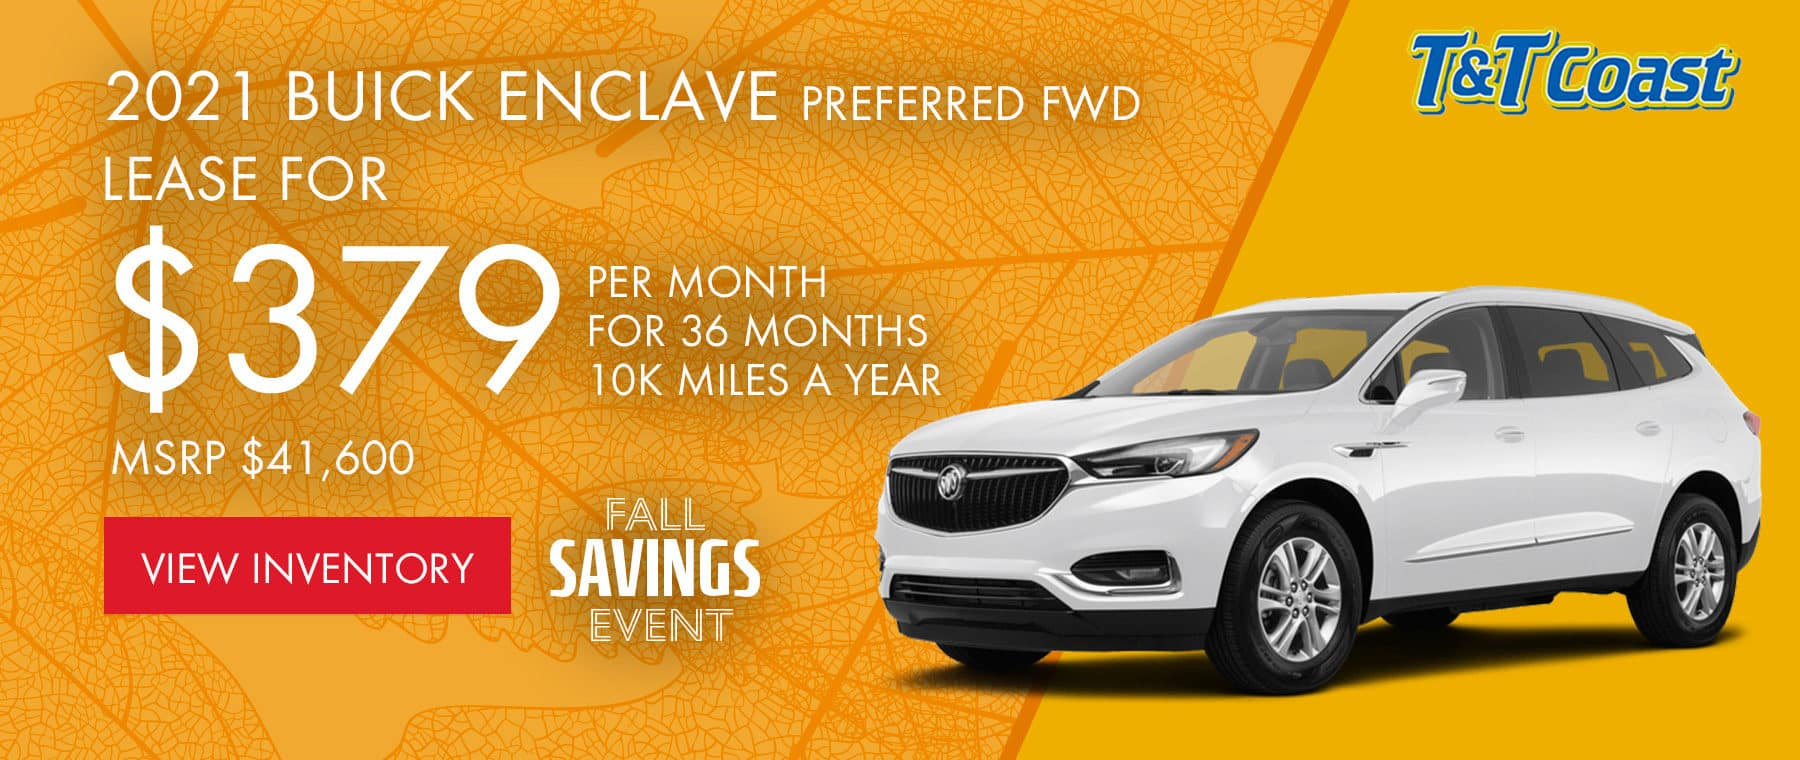 2021 BUICK ENCLAVE PREFERRED FWD MSRP $41,600 $379/MONTH LEASE! For 36 Months /10K Miles/Year